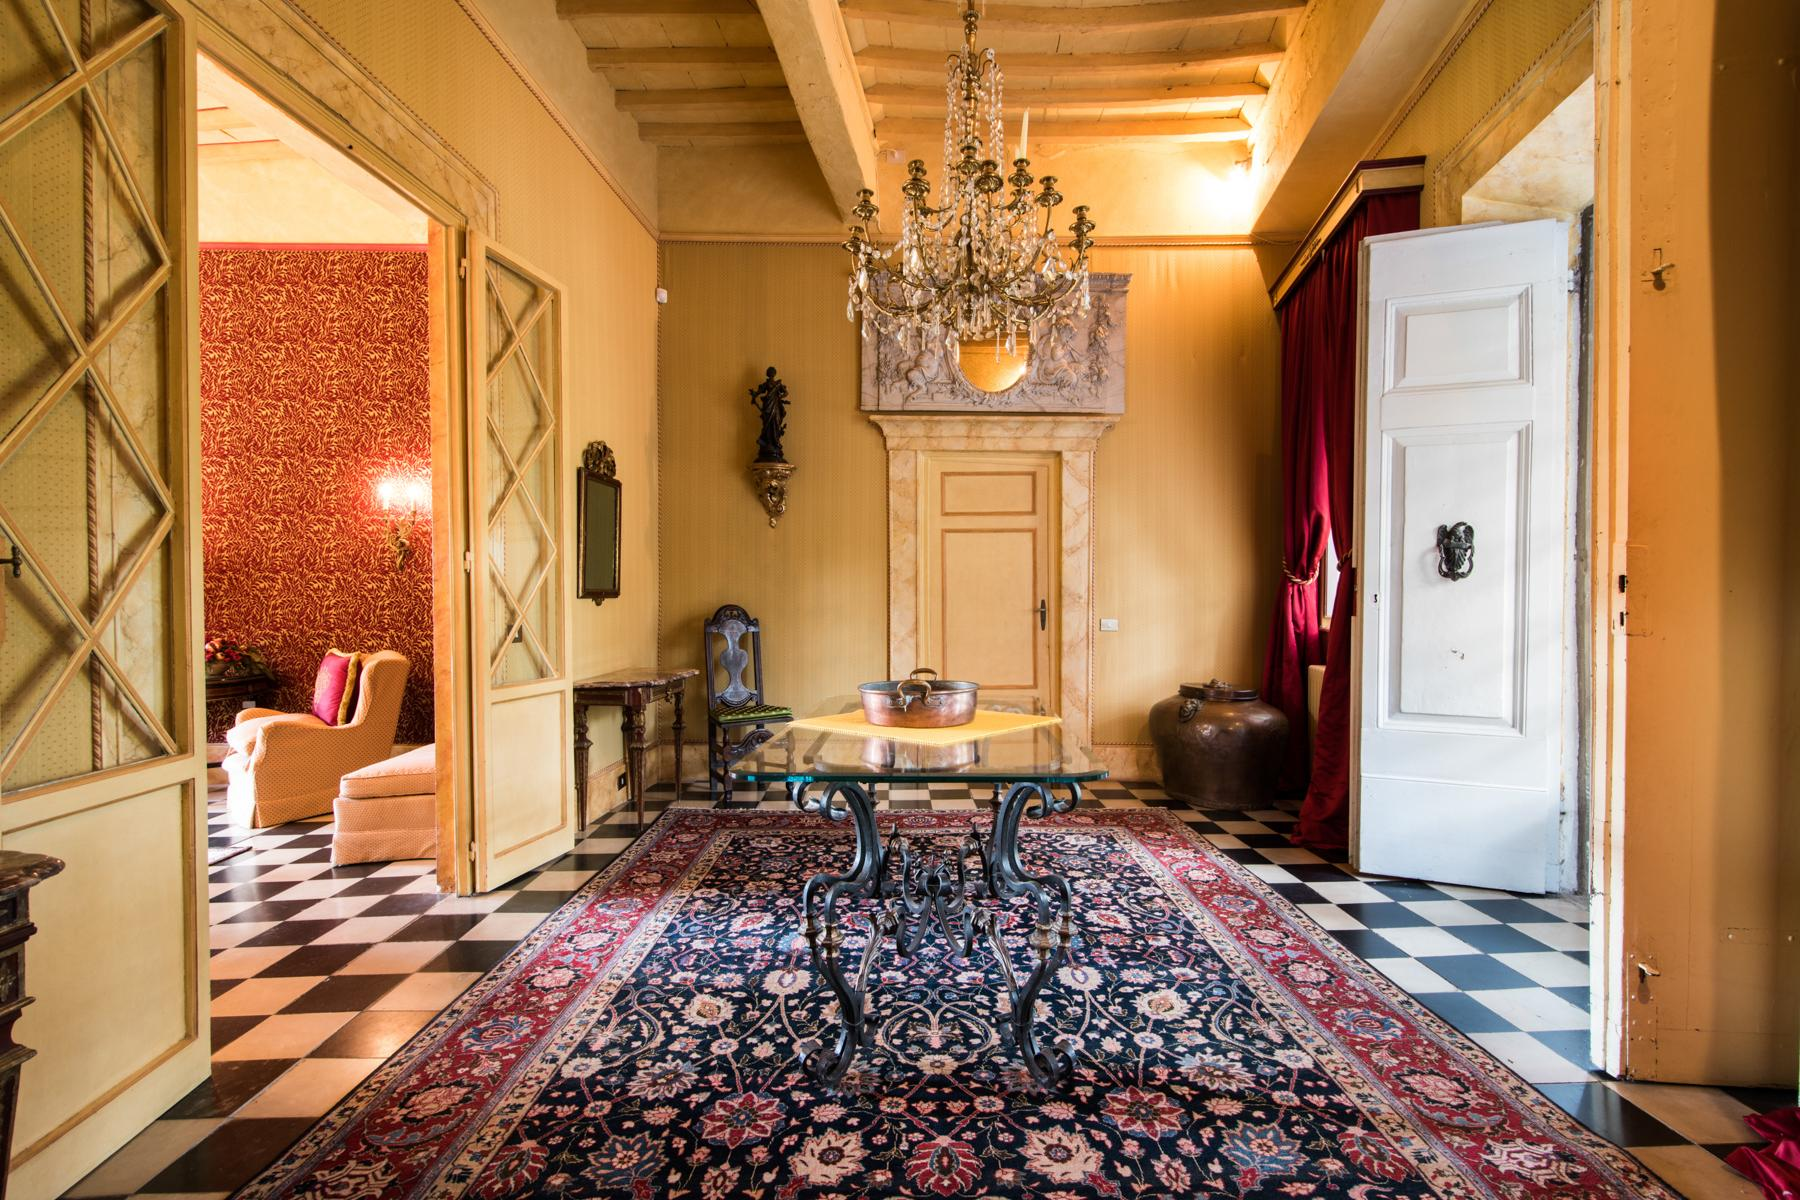 Marvelous villa in the countryside of Lucca - 5